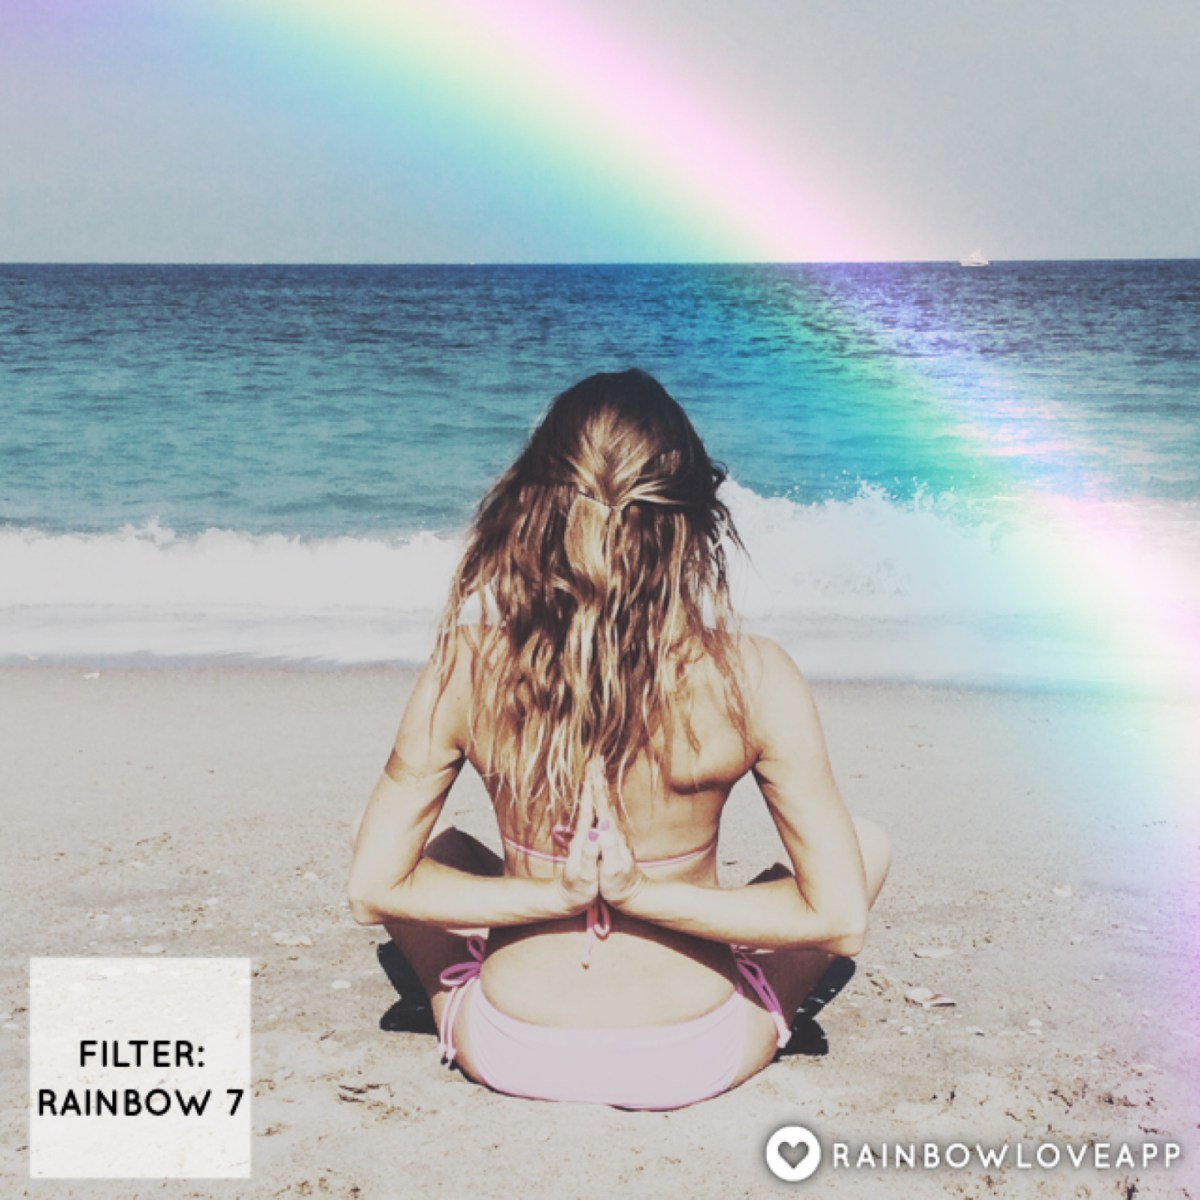 rainbow-love-app-rainbow-filter-7-add-best-rainbows-moons-moon-filters-to-your-photos